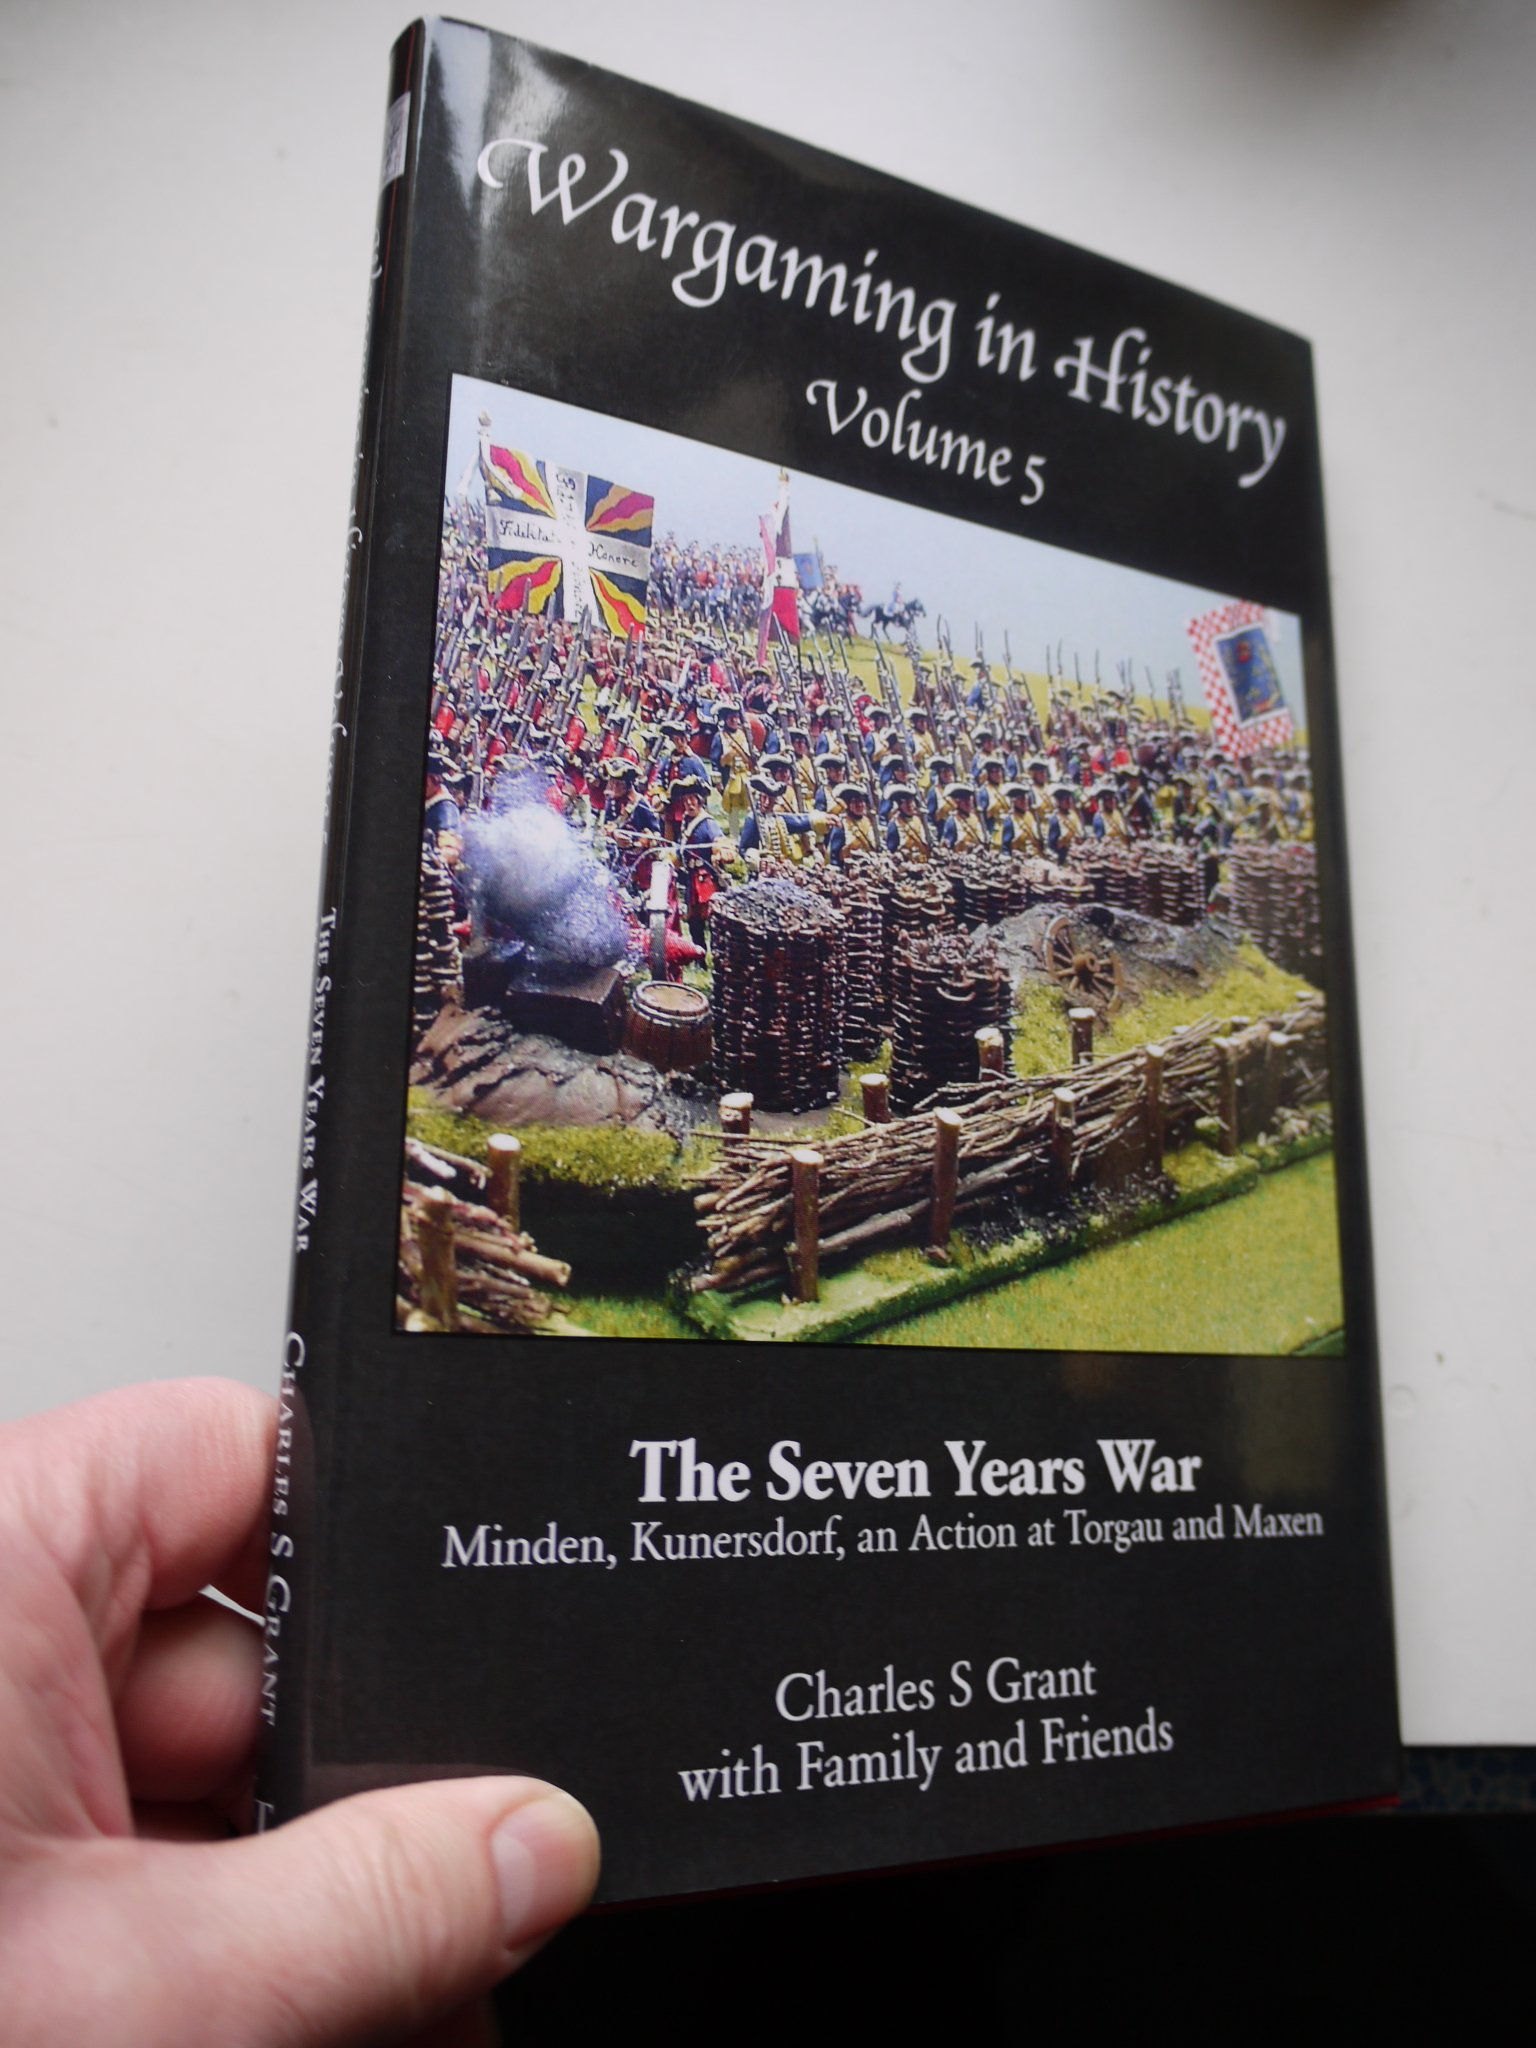 Wargaming in History: Volume 5: The Seven Years War - Minden, Kunersdorf, an Action at Torgau and Axen PDF